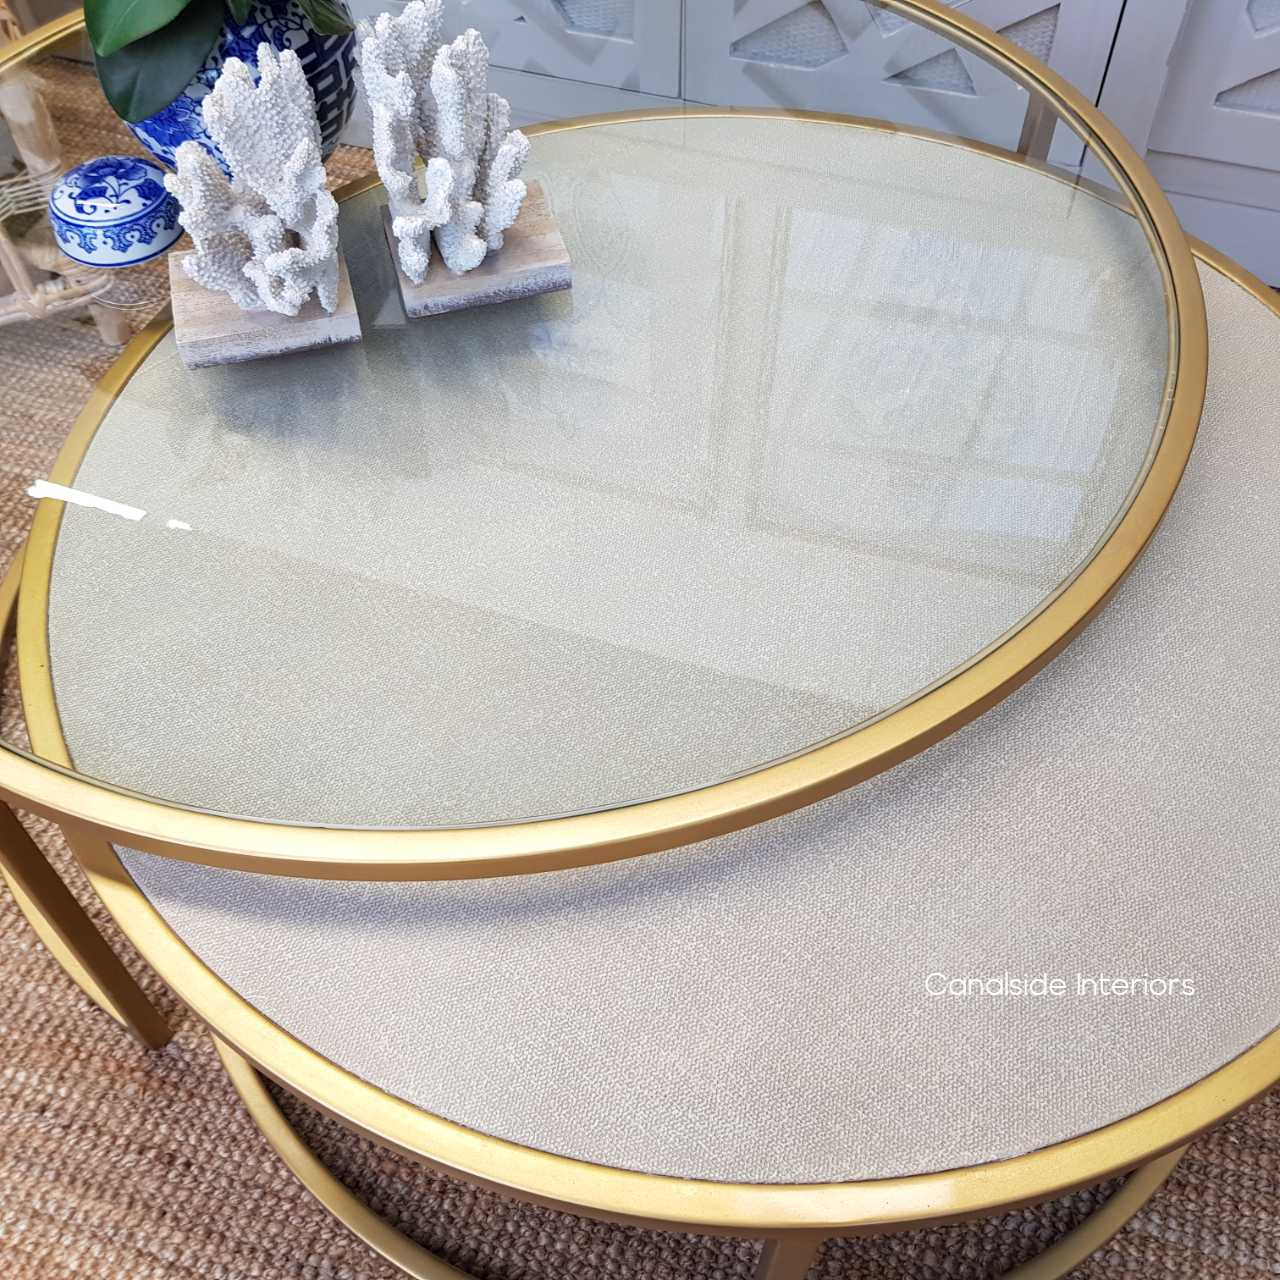 Knox Plantation Nesting Coffee Table Gold TABLES, TABLES Coffee Tables, LIVING Room, LIVING Coffee & Side Tables, PLANTATION STYLE